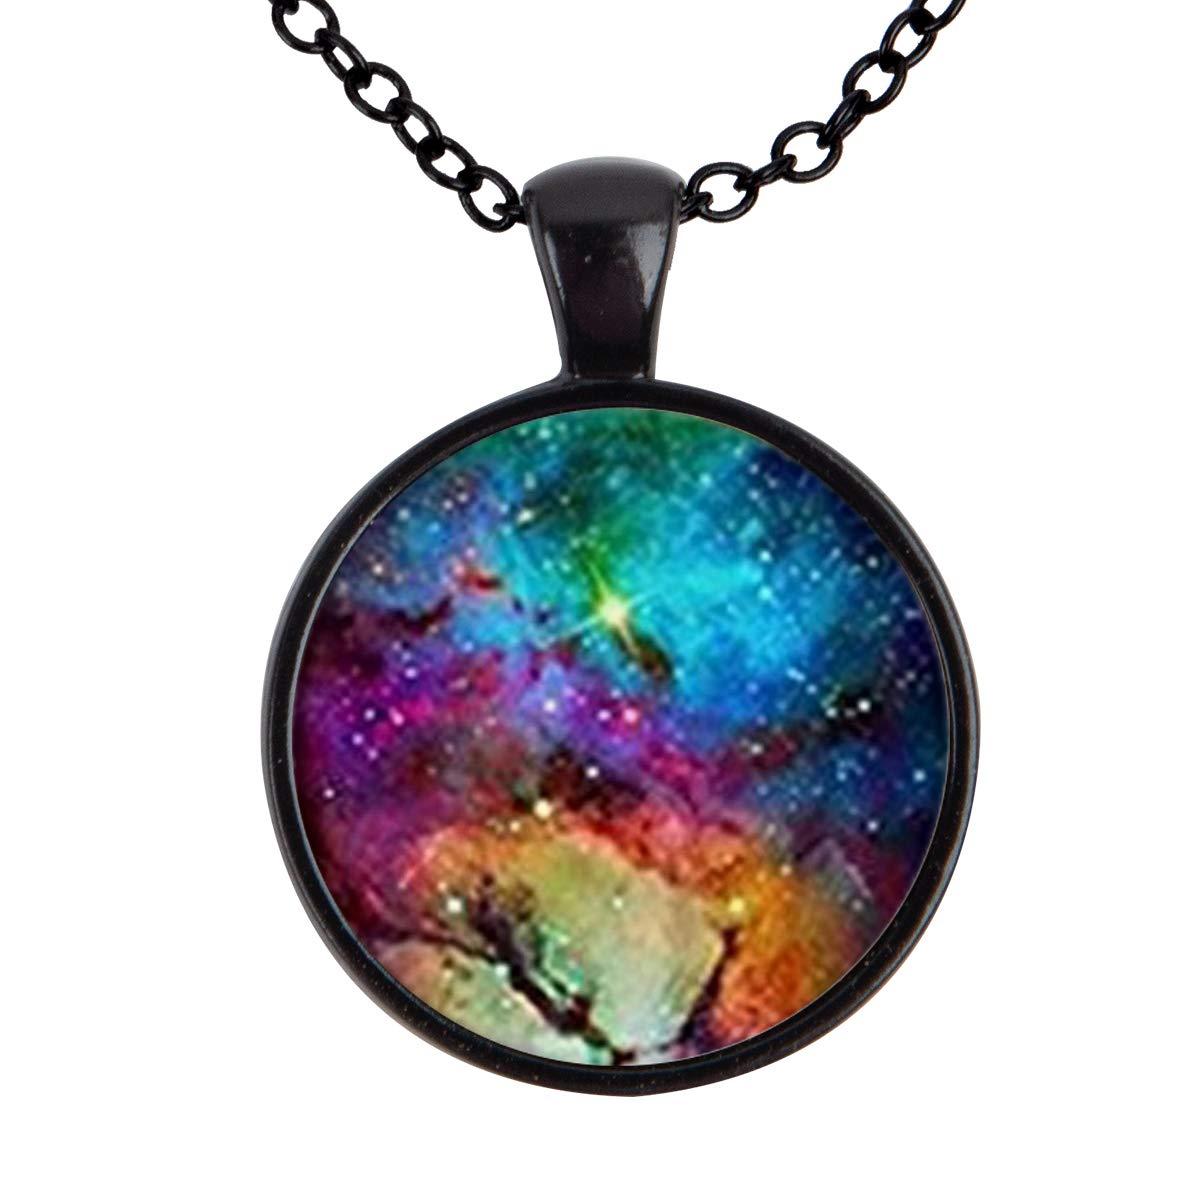 Lightrain Star Universe Starry Pendant Necklace Vintage Bronze Chain Statement Necklace Handmade Jewelry Gifts